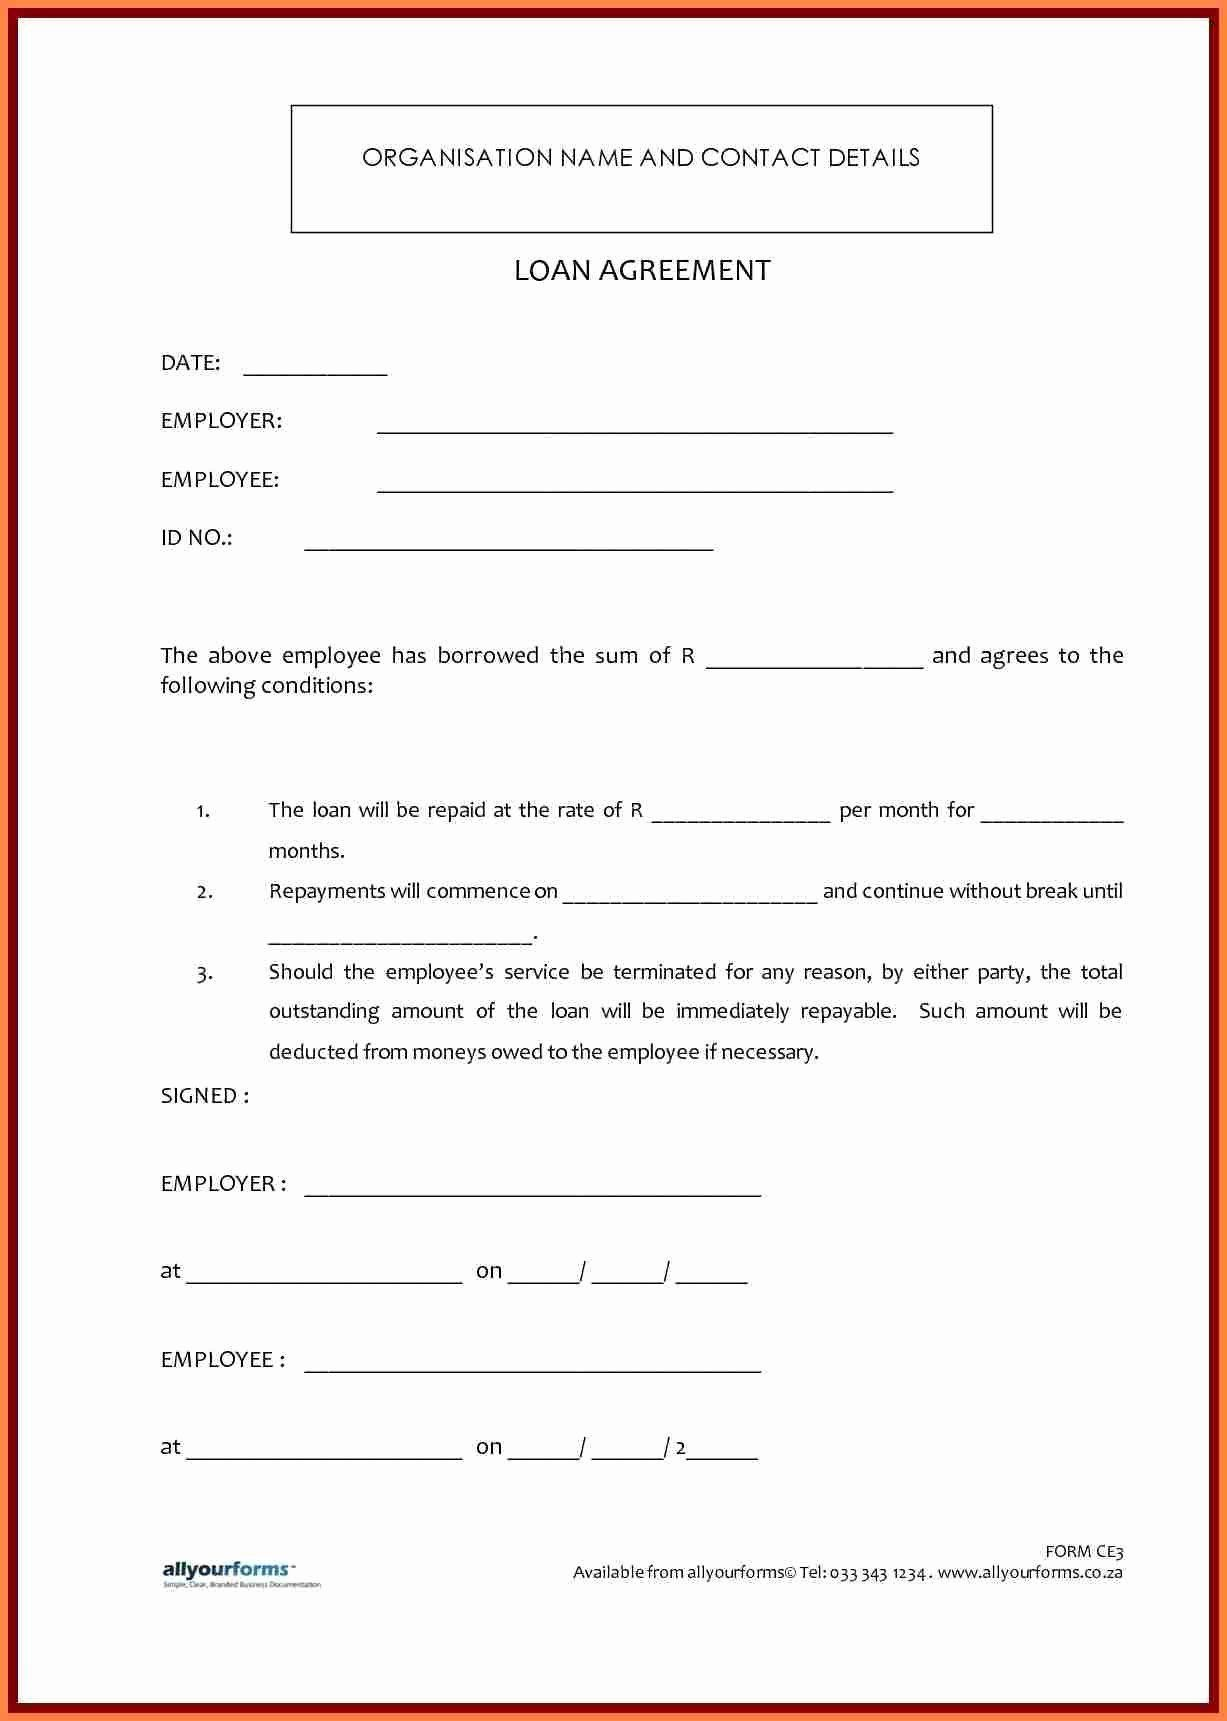 000 Impressive Simple Family Loan Agreement Template Australia Idea Full